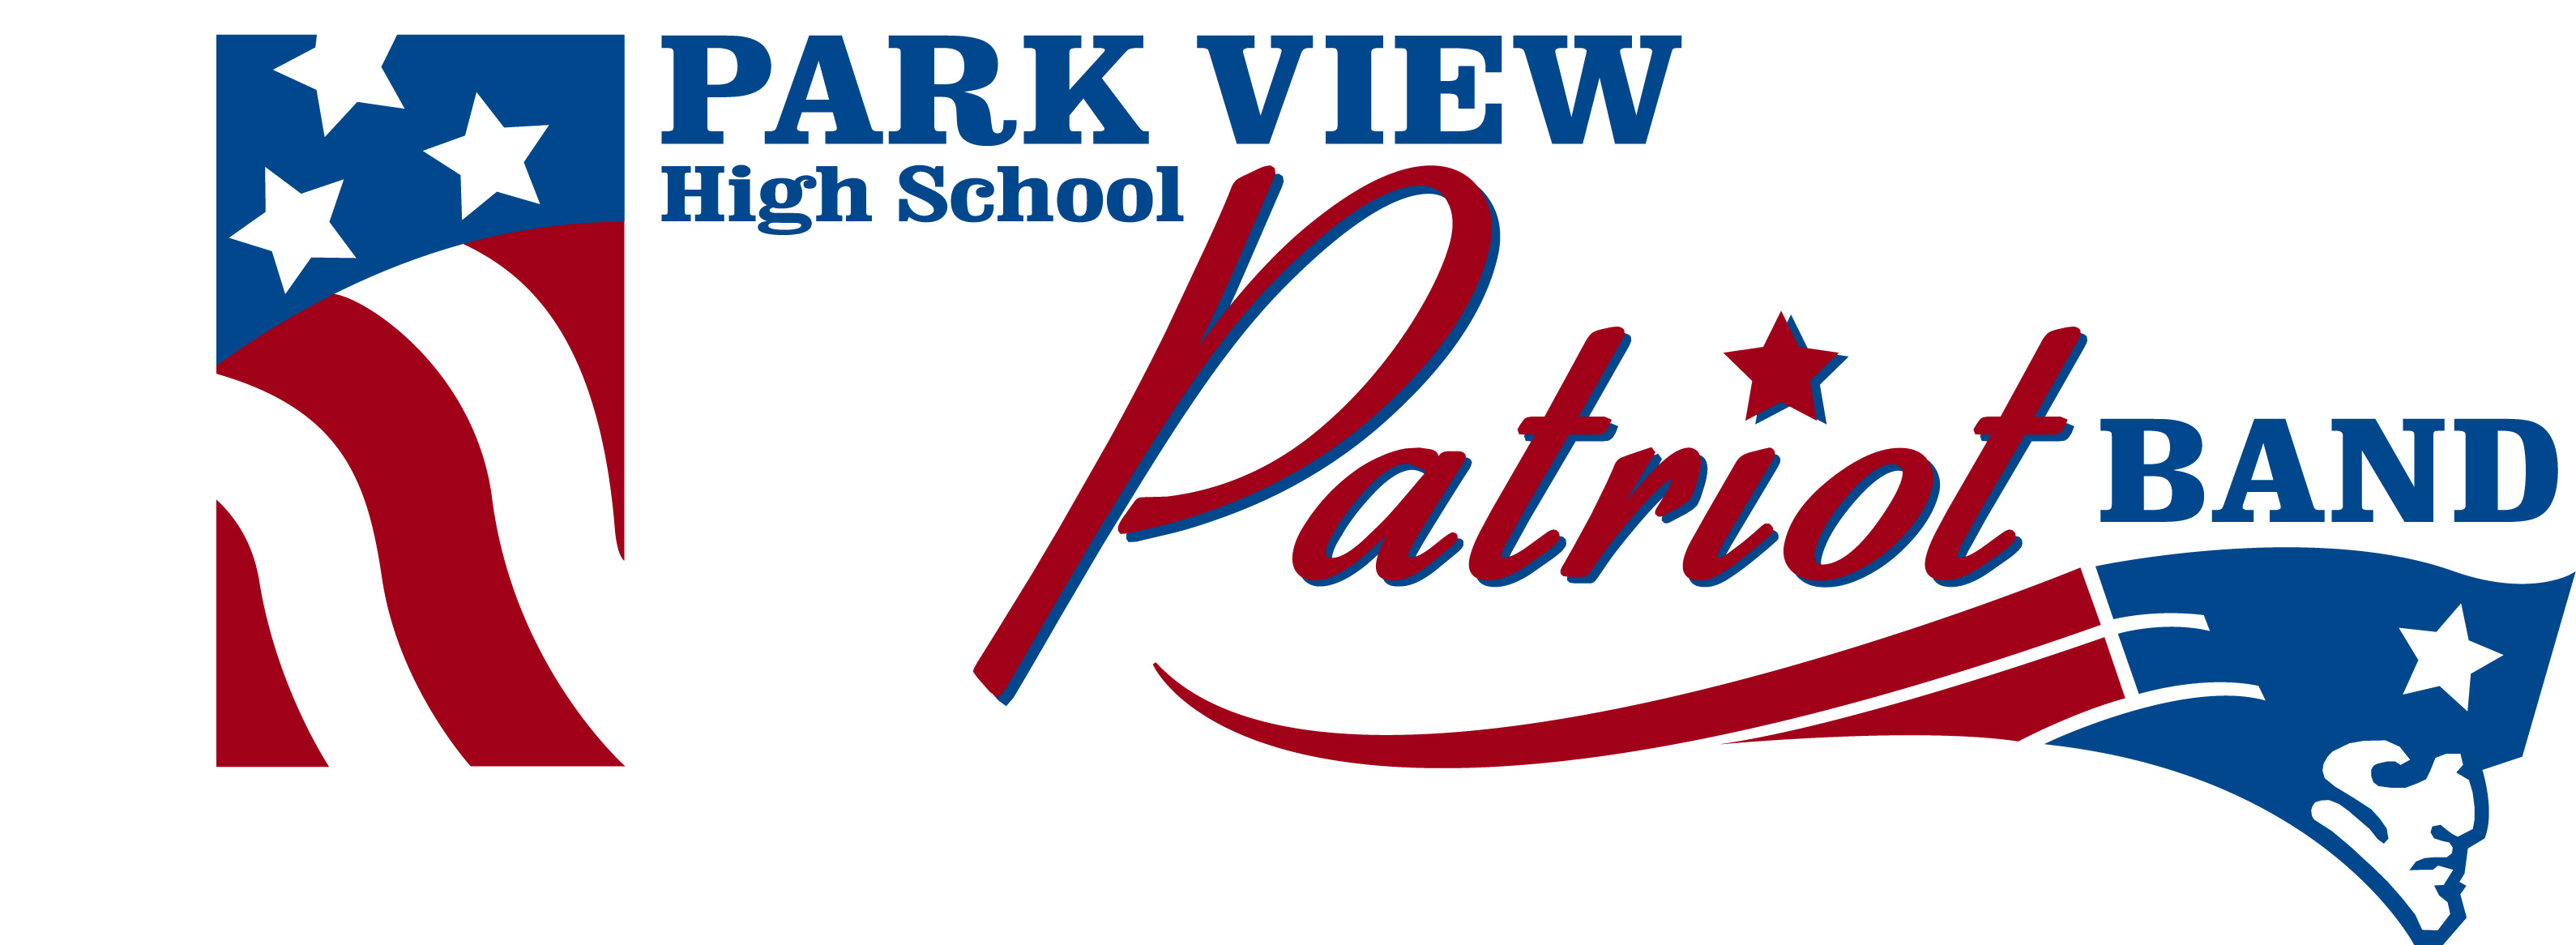 Park View Band